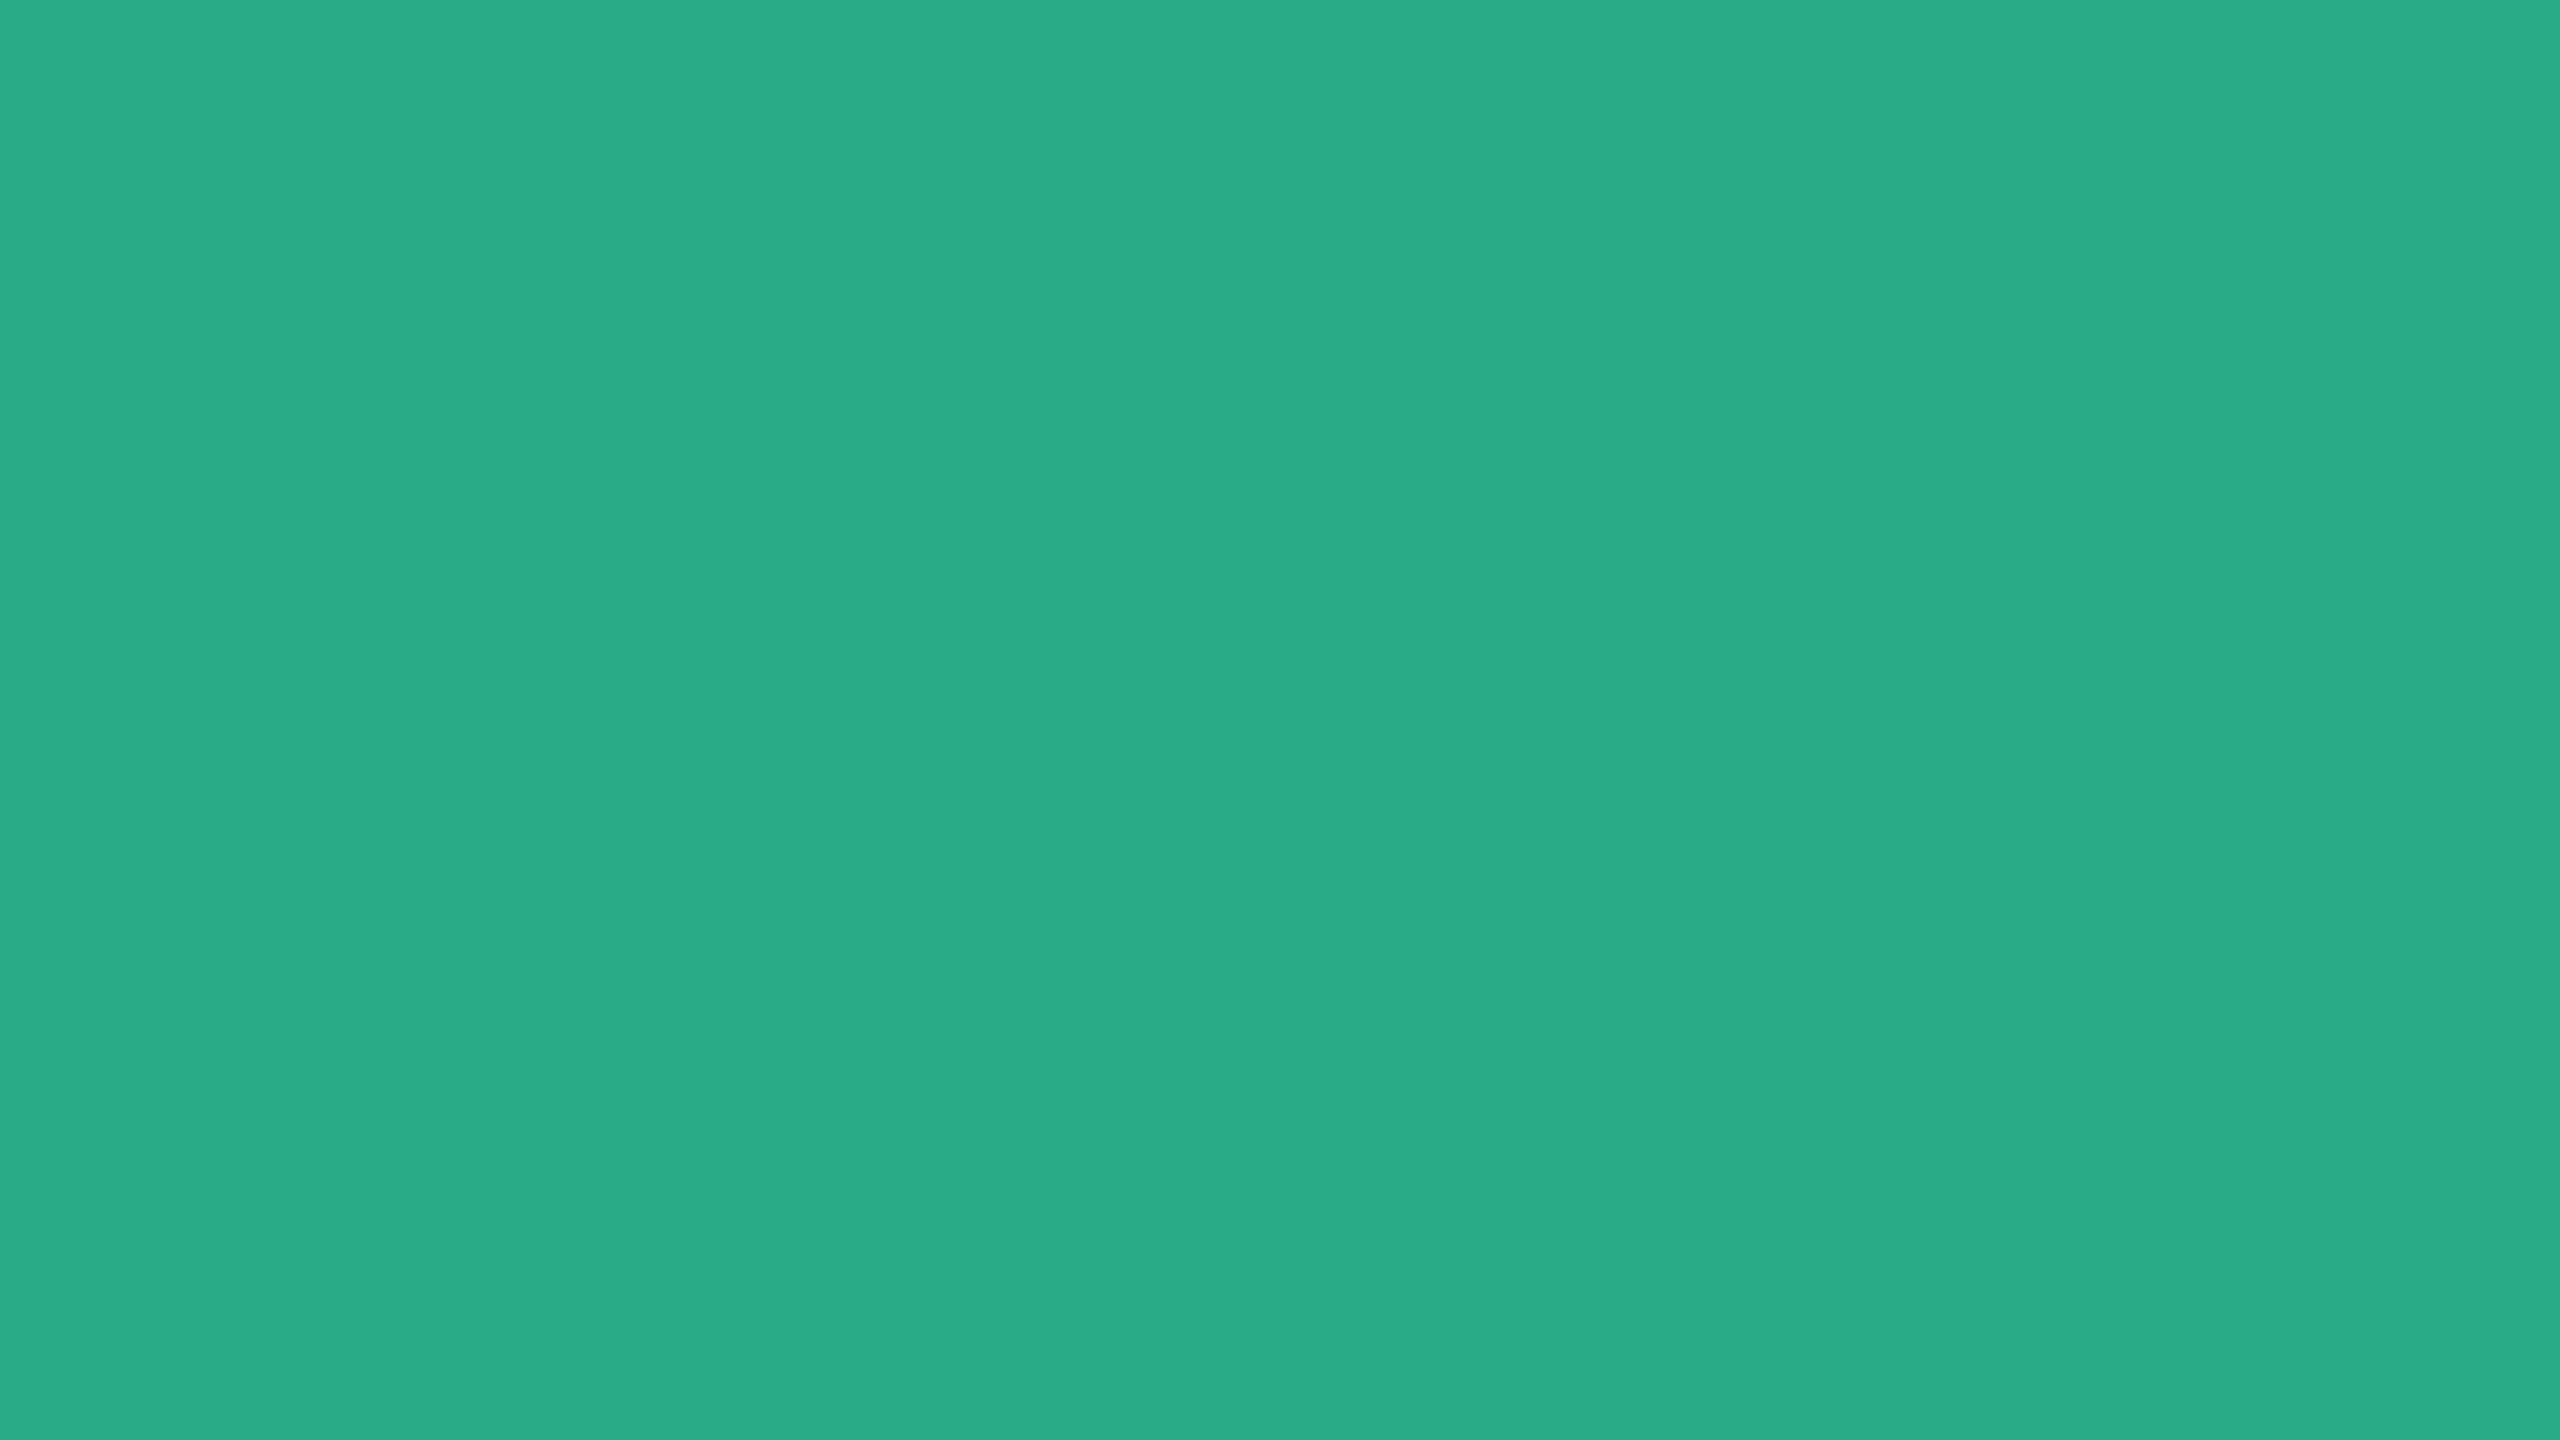 2560x1440 Jungle Green Solid Color Background